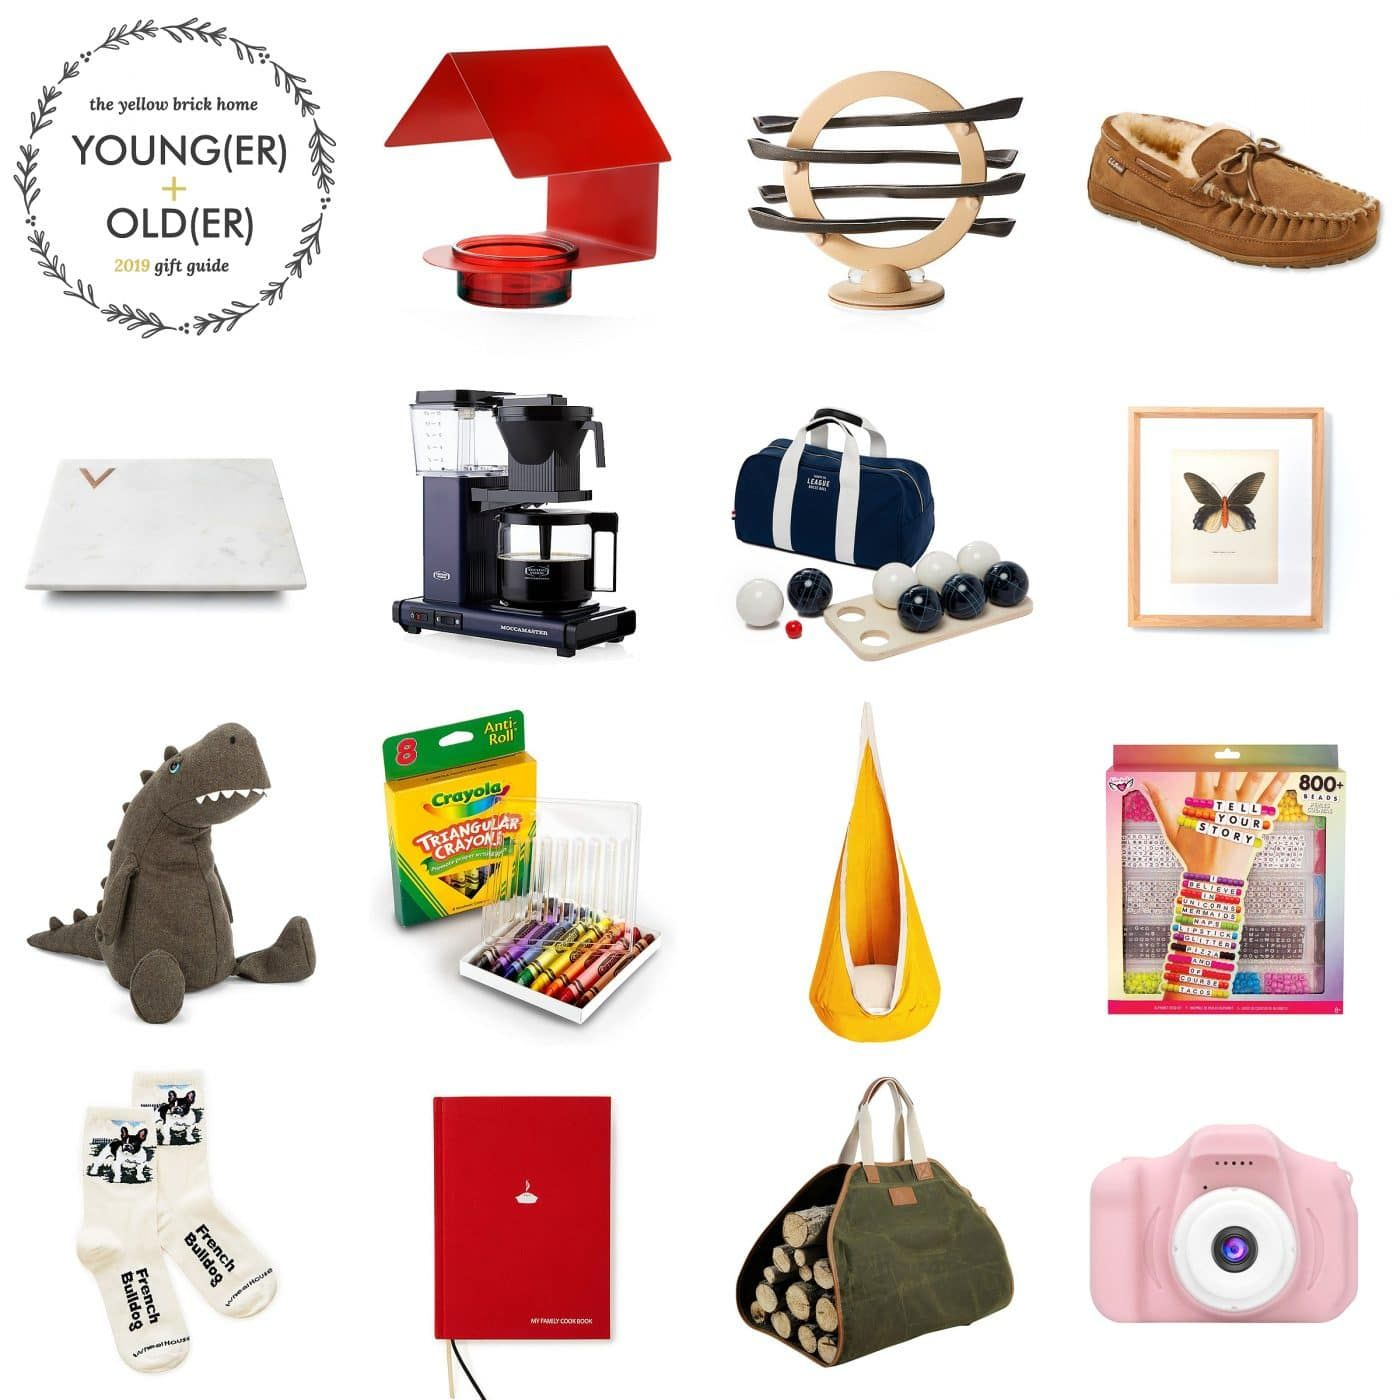 For Young(er) + Old(er): The YBH 2019 Gift Guide #bestgiftsforgrandparents